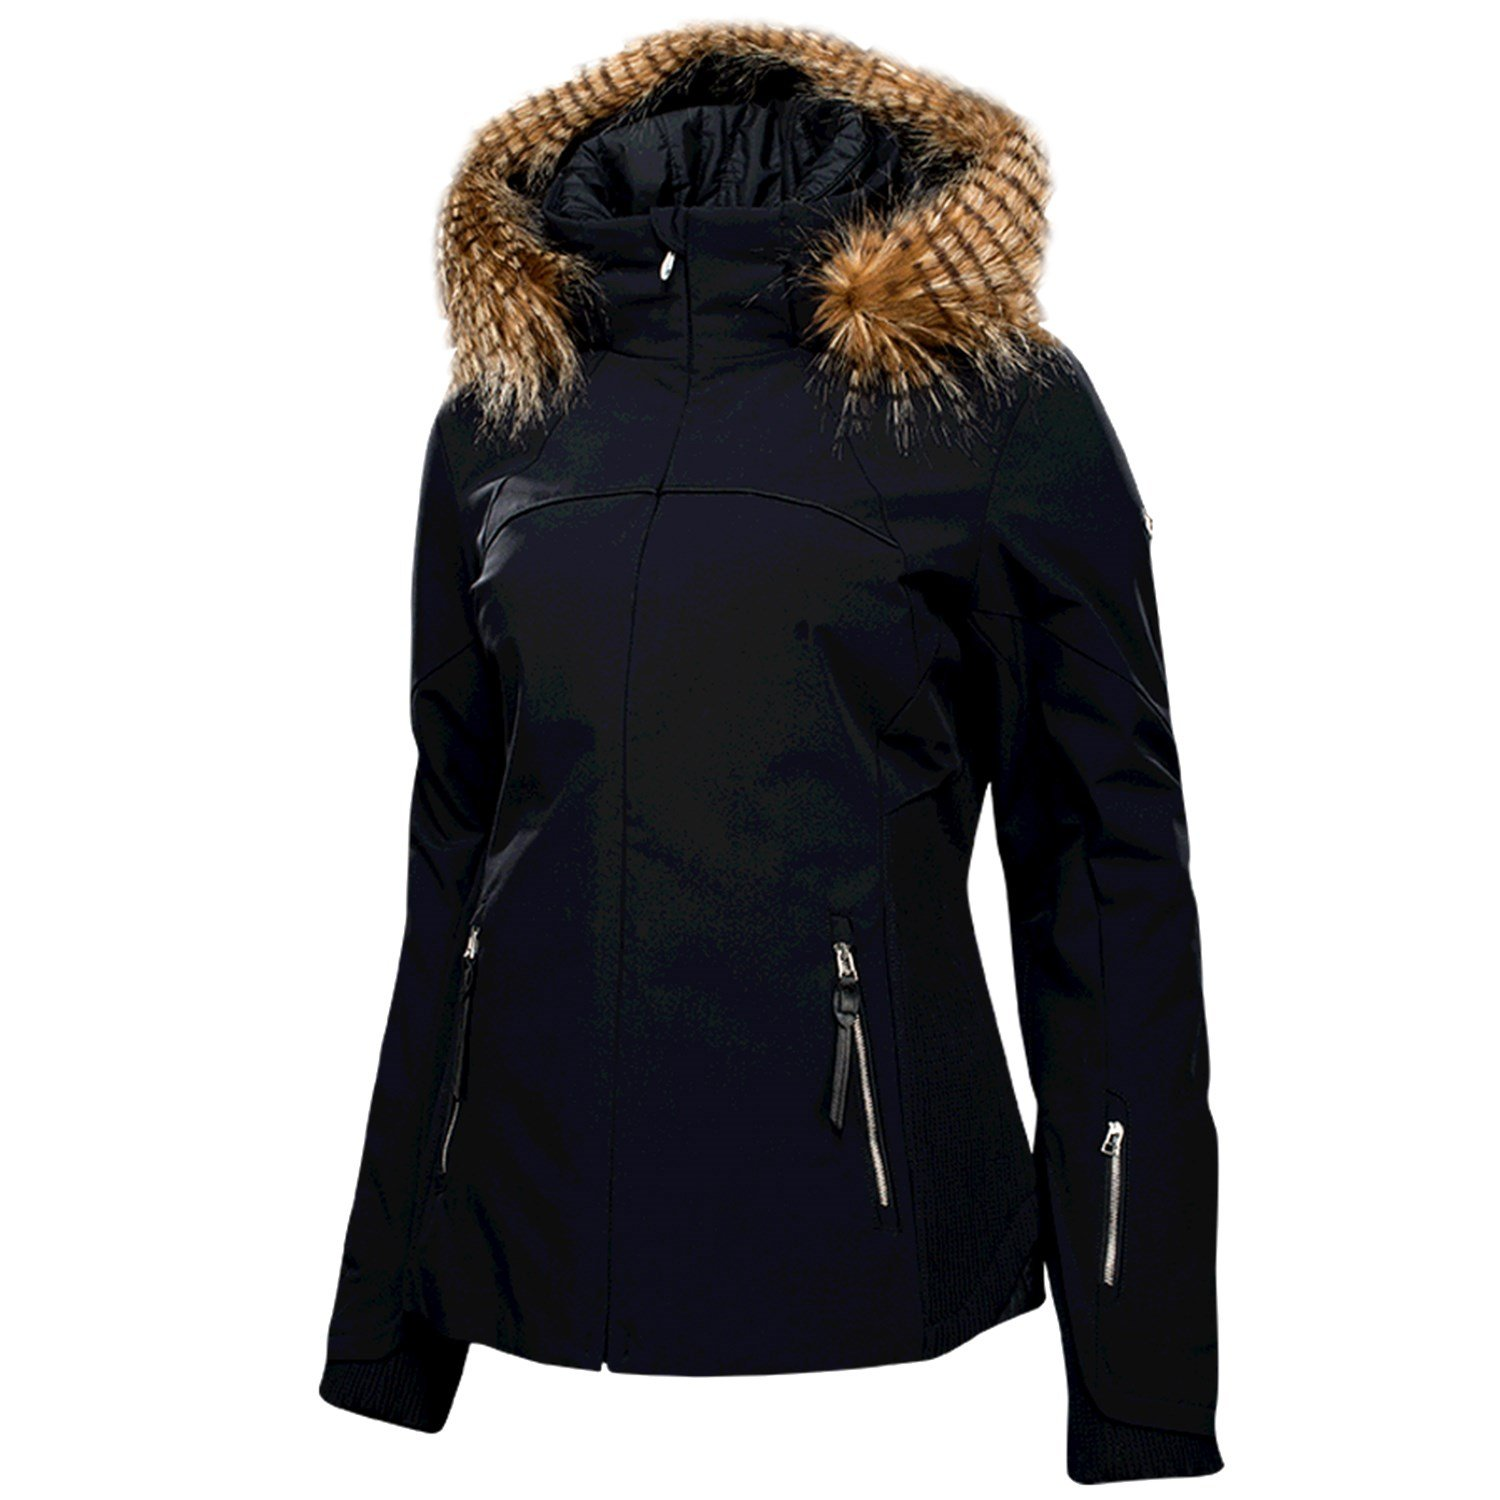 Womens spyder jacket with fur